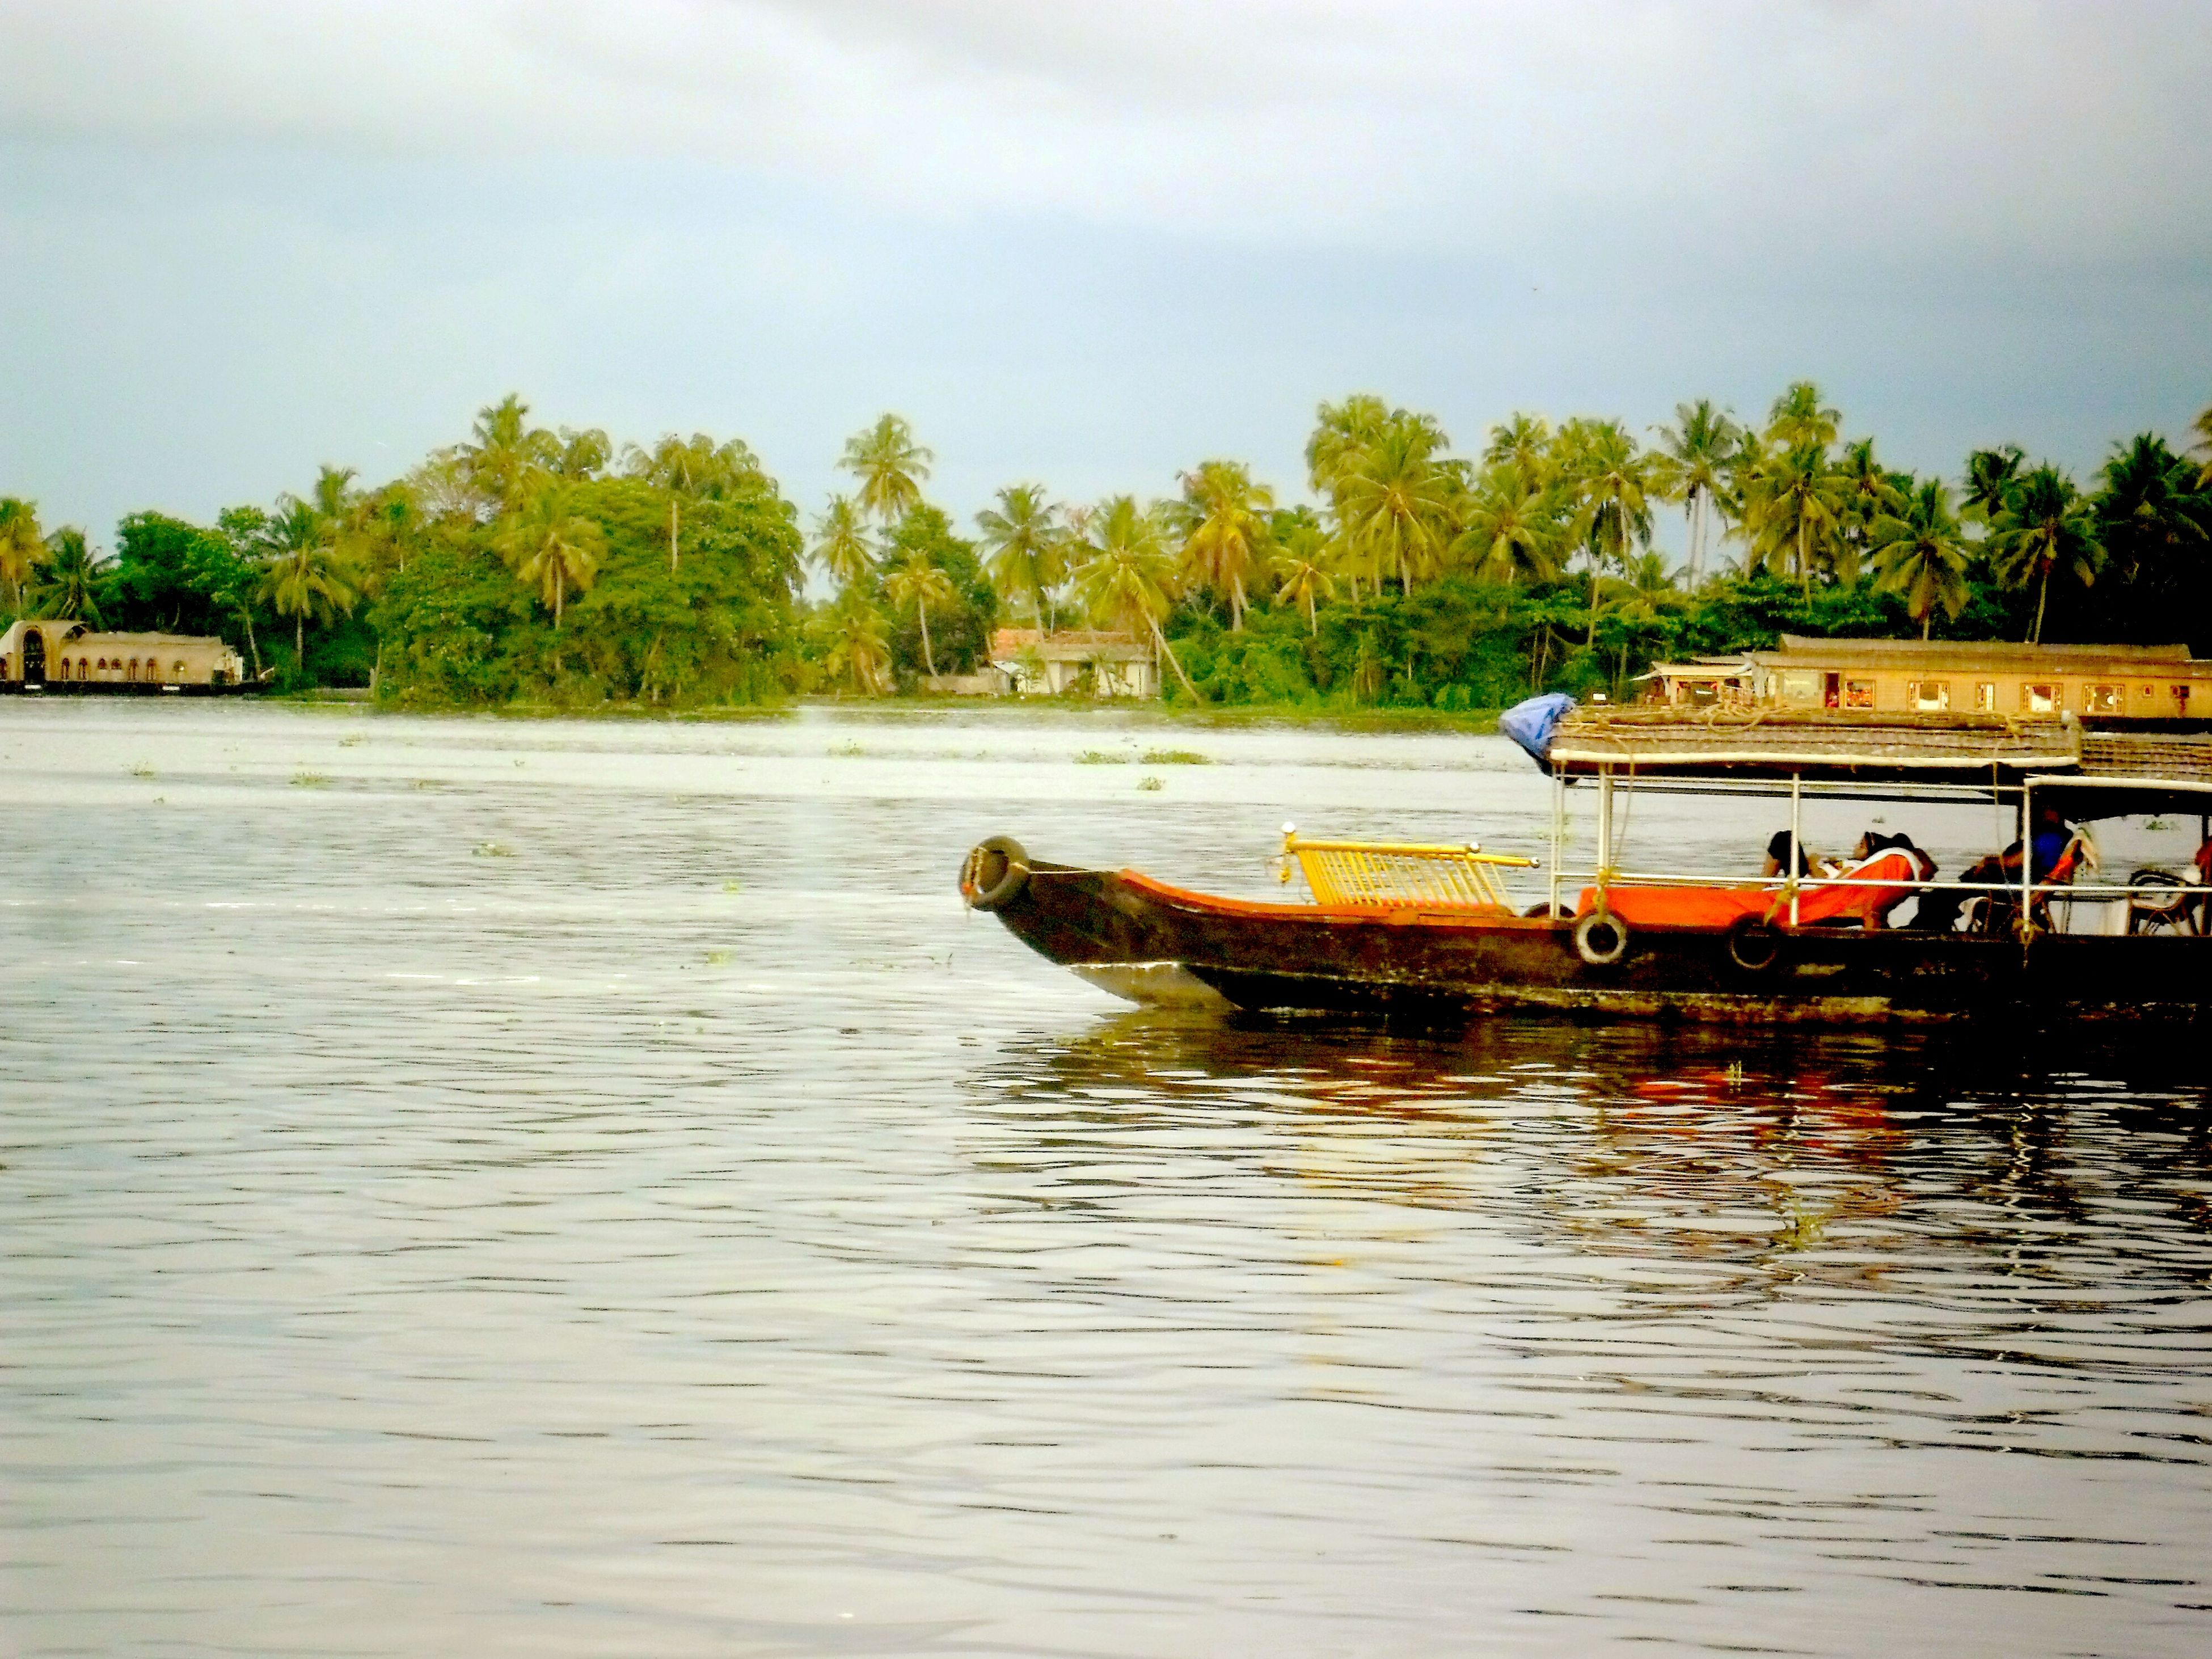 nautical vessel, transportation, mode of transport, water, river, sky, outdoors, tree, day, nature, no people, pedal boat